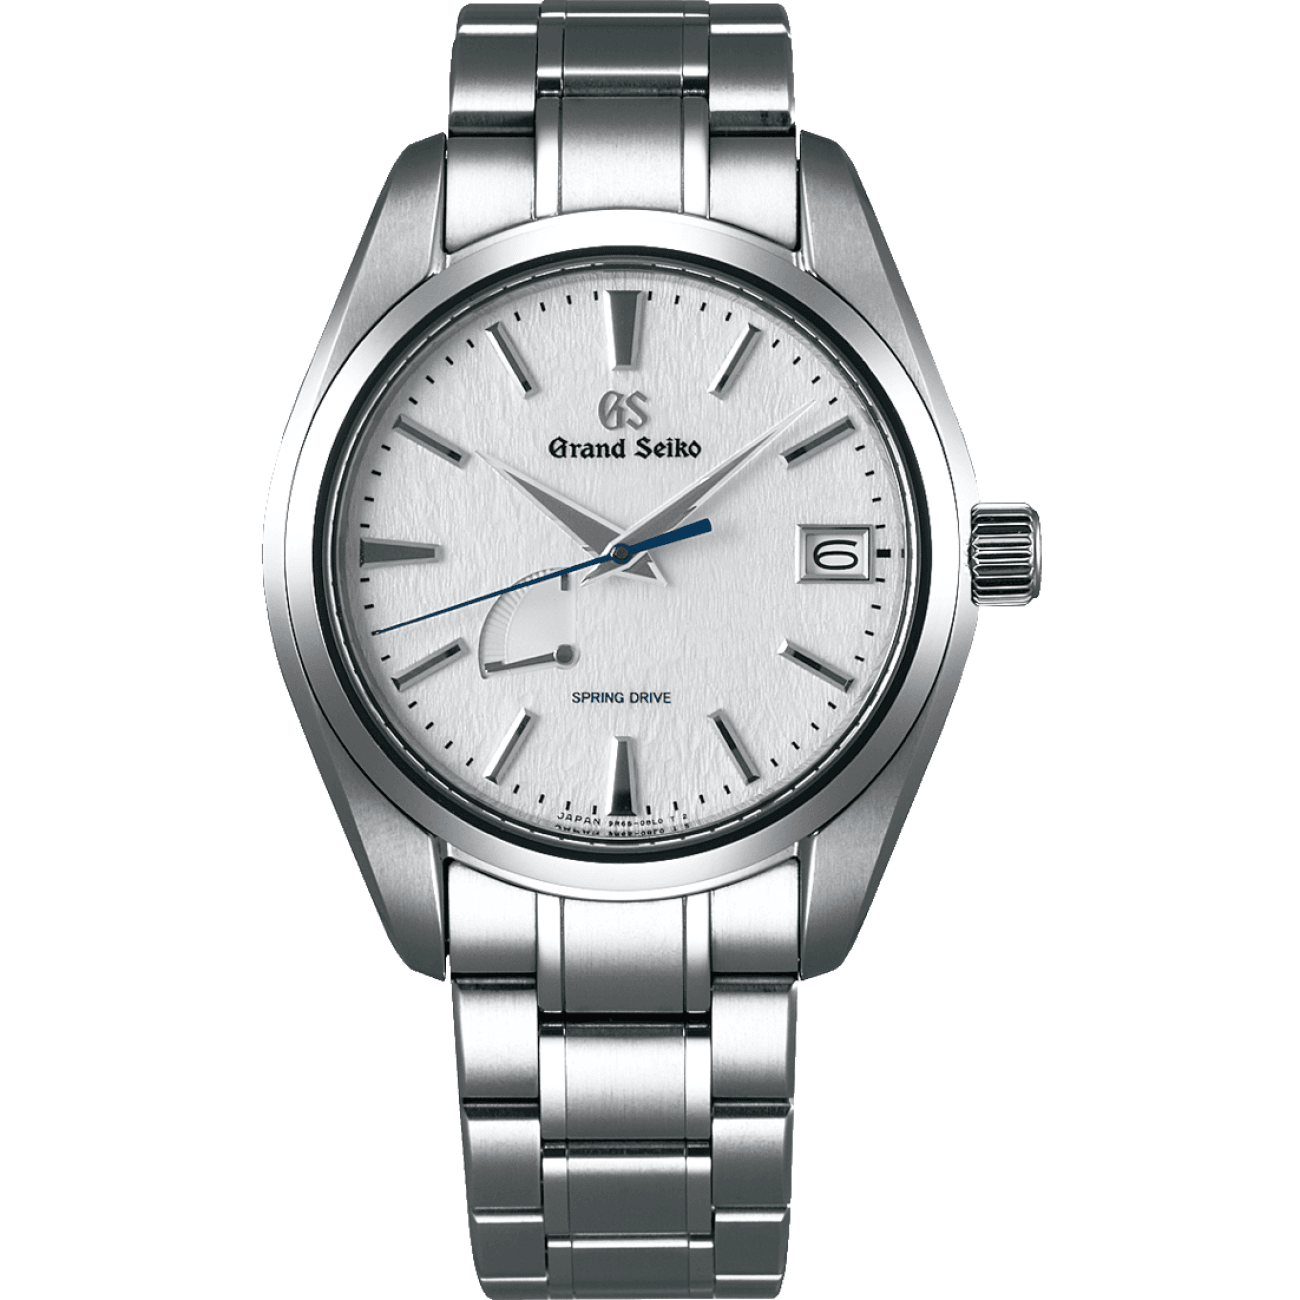 Grand Seiko Watches - SBGA211 [ Grand Seiko Heritage Collection ] | Manfredi Jewels